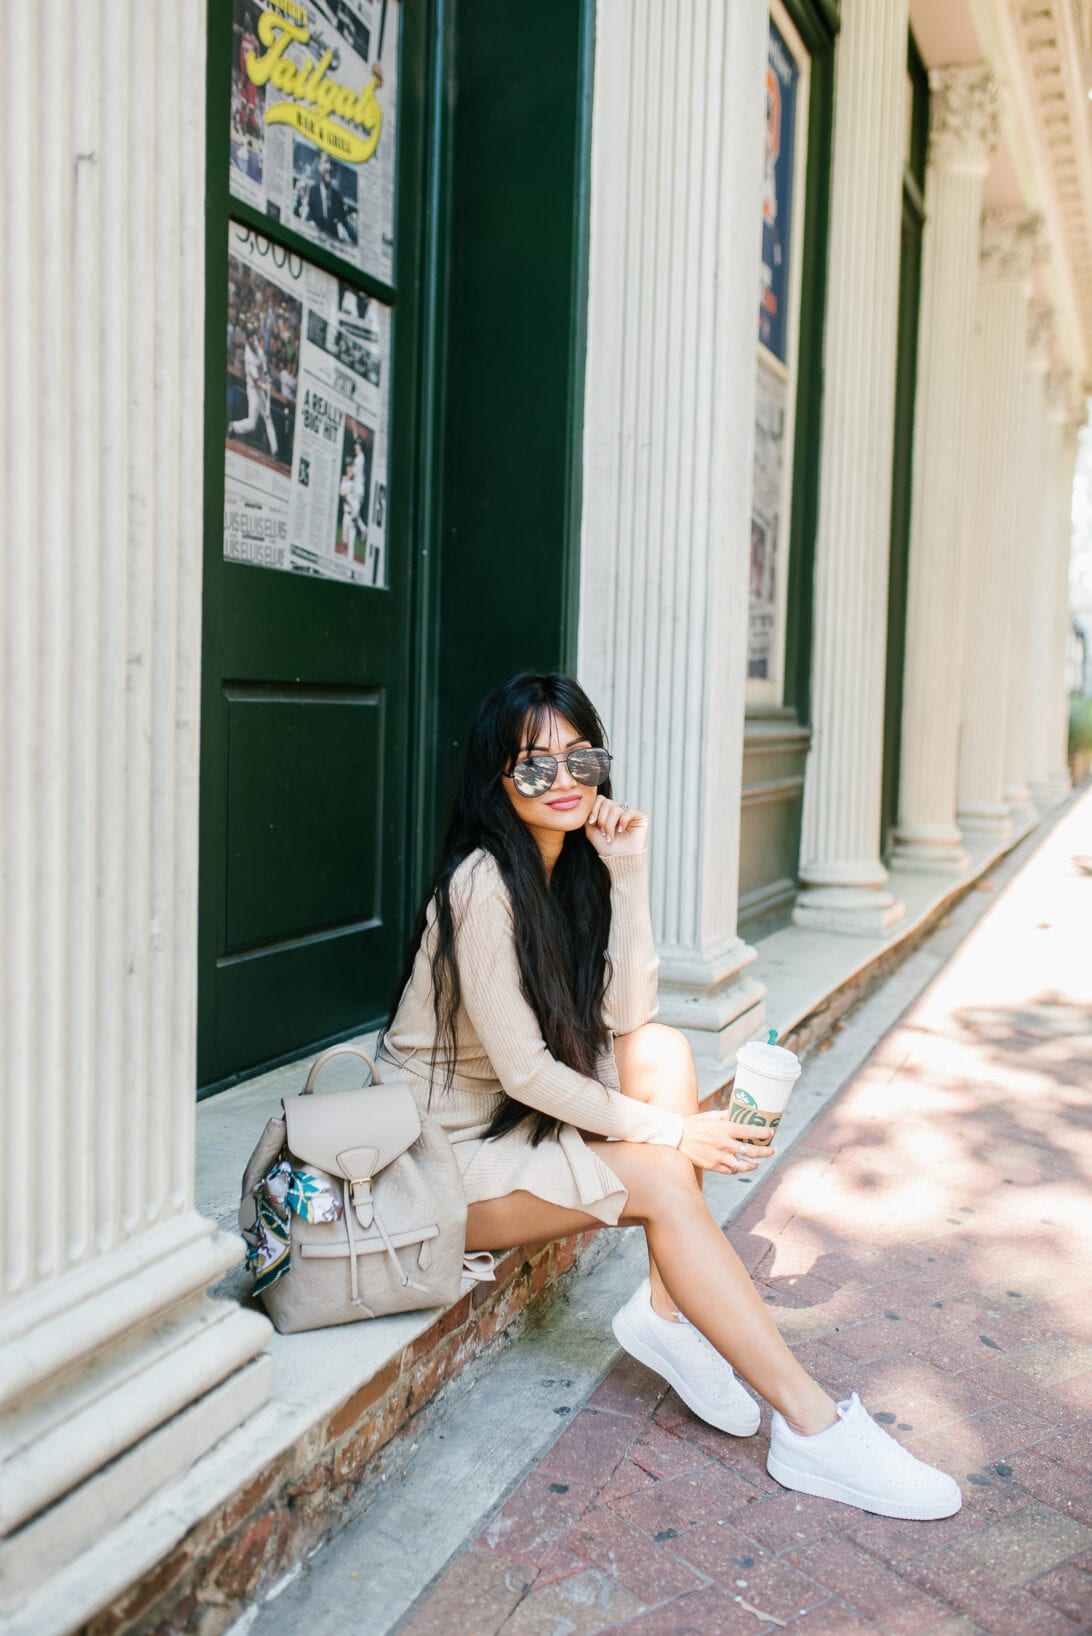 LOUIS VUITTON MONTSOURIS BACKPACK, air force ones, white nike sneakers, DSW, dress and sneaker outfit, aviator sunglasses